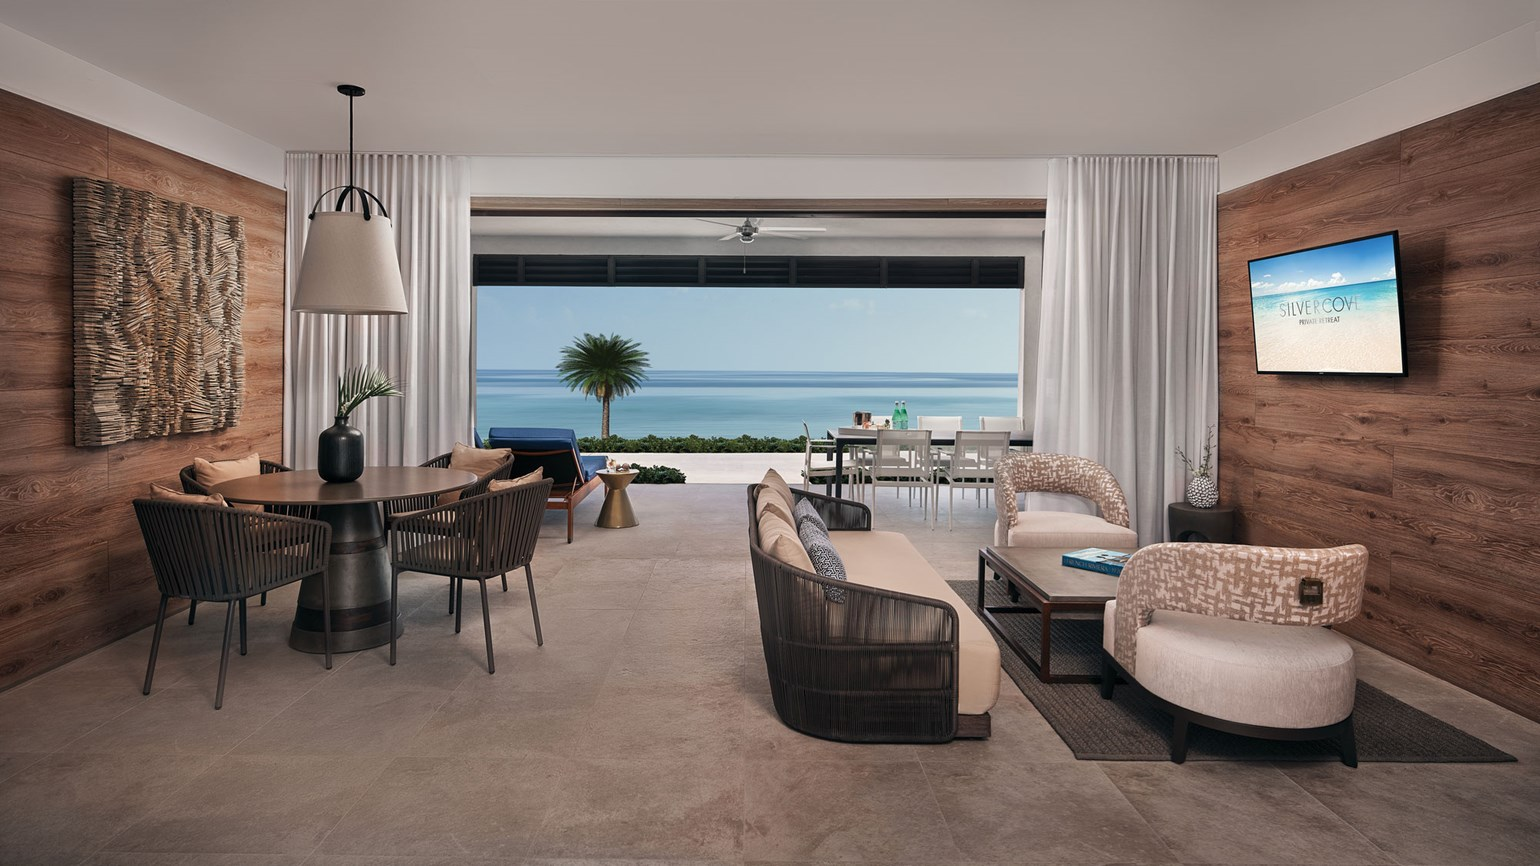 NCL's Silver Cove villas open on Great Stirrup Cay